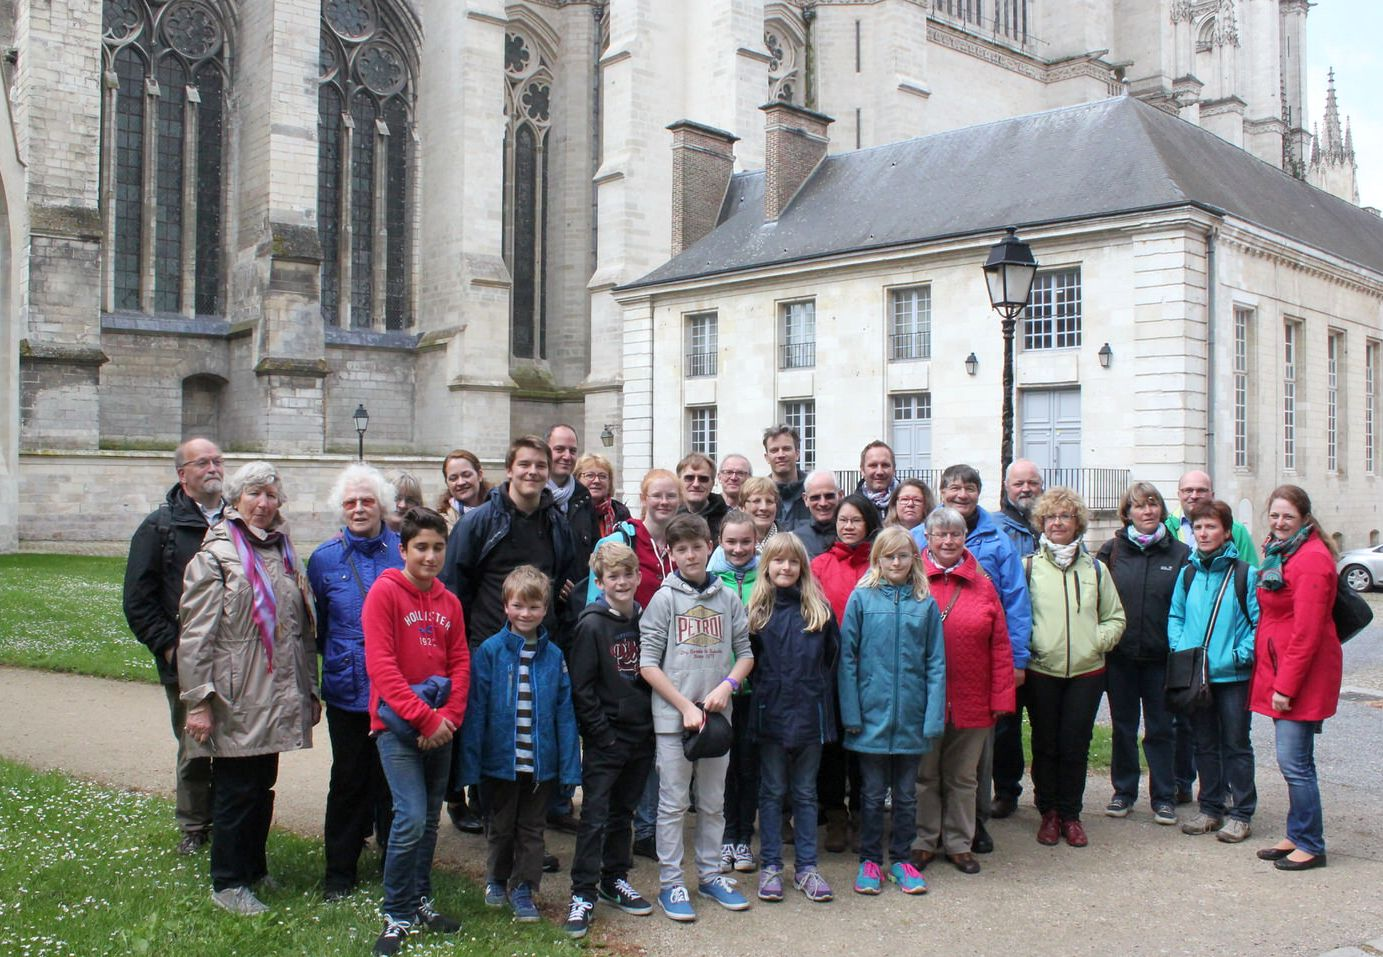 2-Amiens-Kathedrale